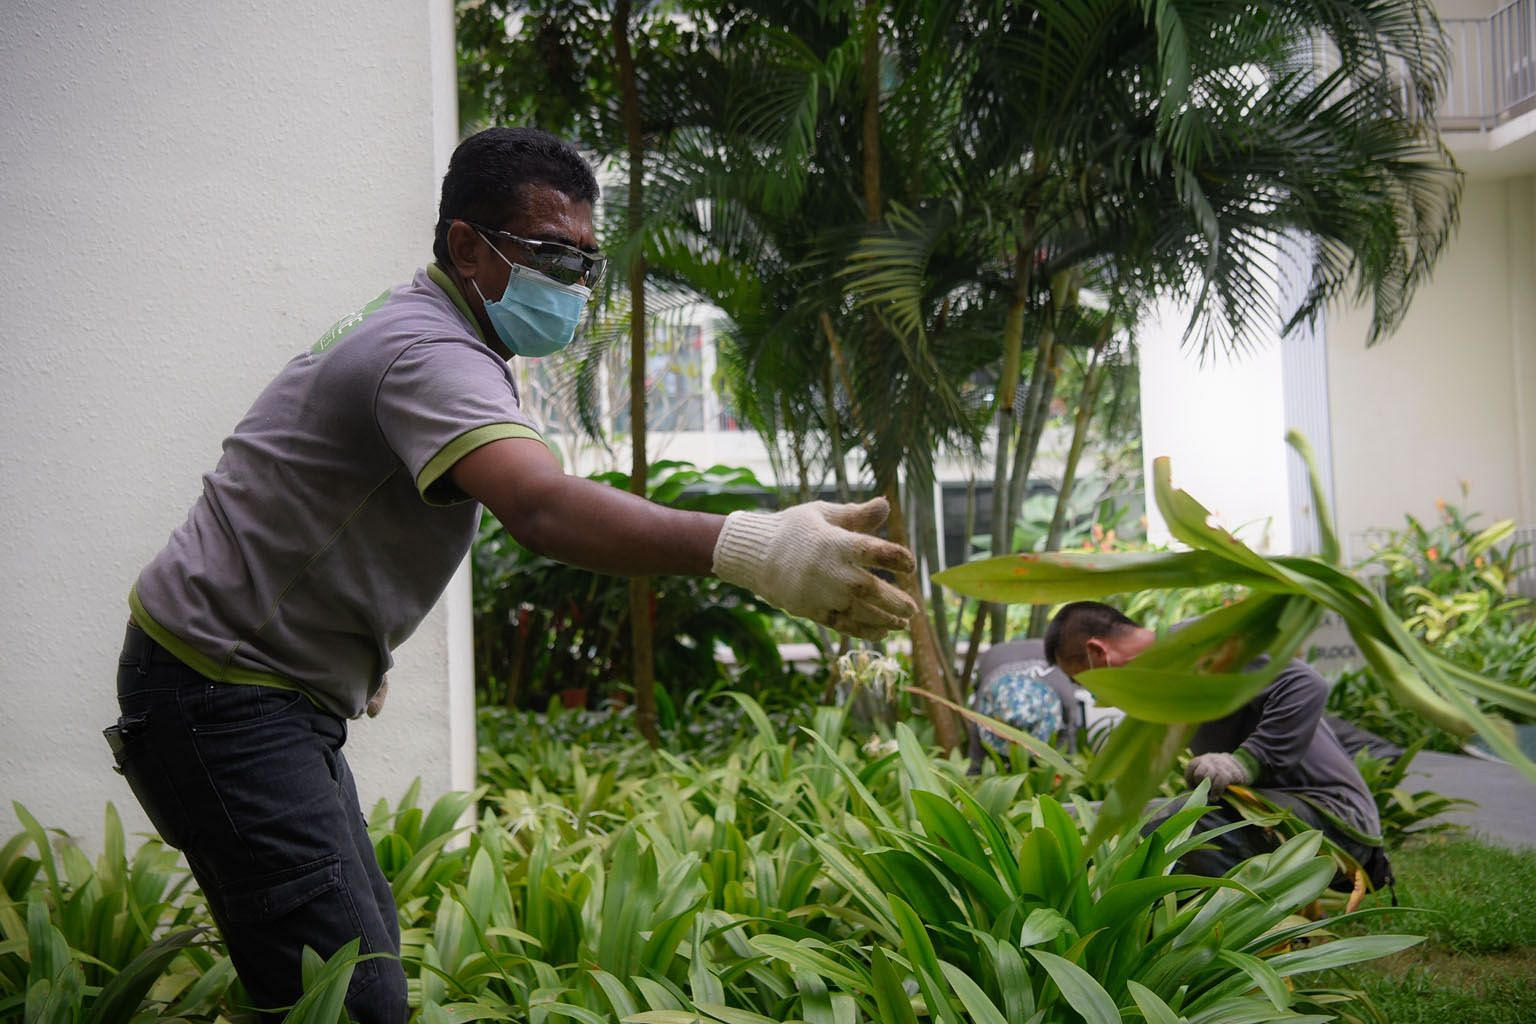 Singaporean Rosli Latiff, 57, who works for Nature Landscapes, continues to help as a site supervisor for one of the horticultural firm's clients in the Dairy Farm area, despite half his team being out of action. The clearance process for workers has held